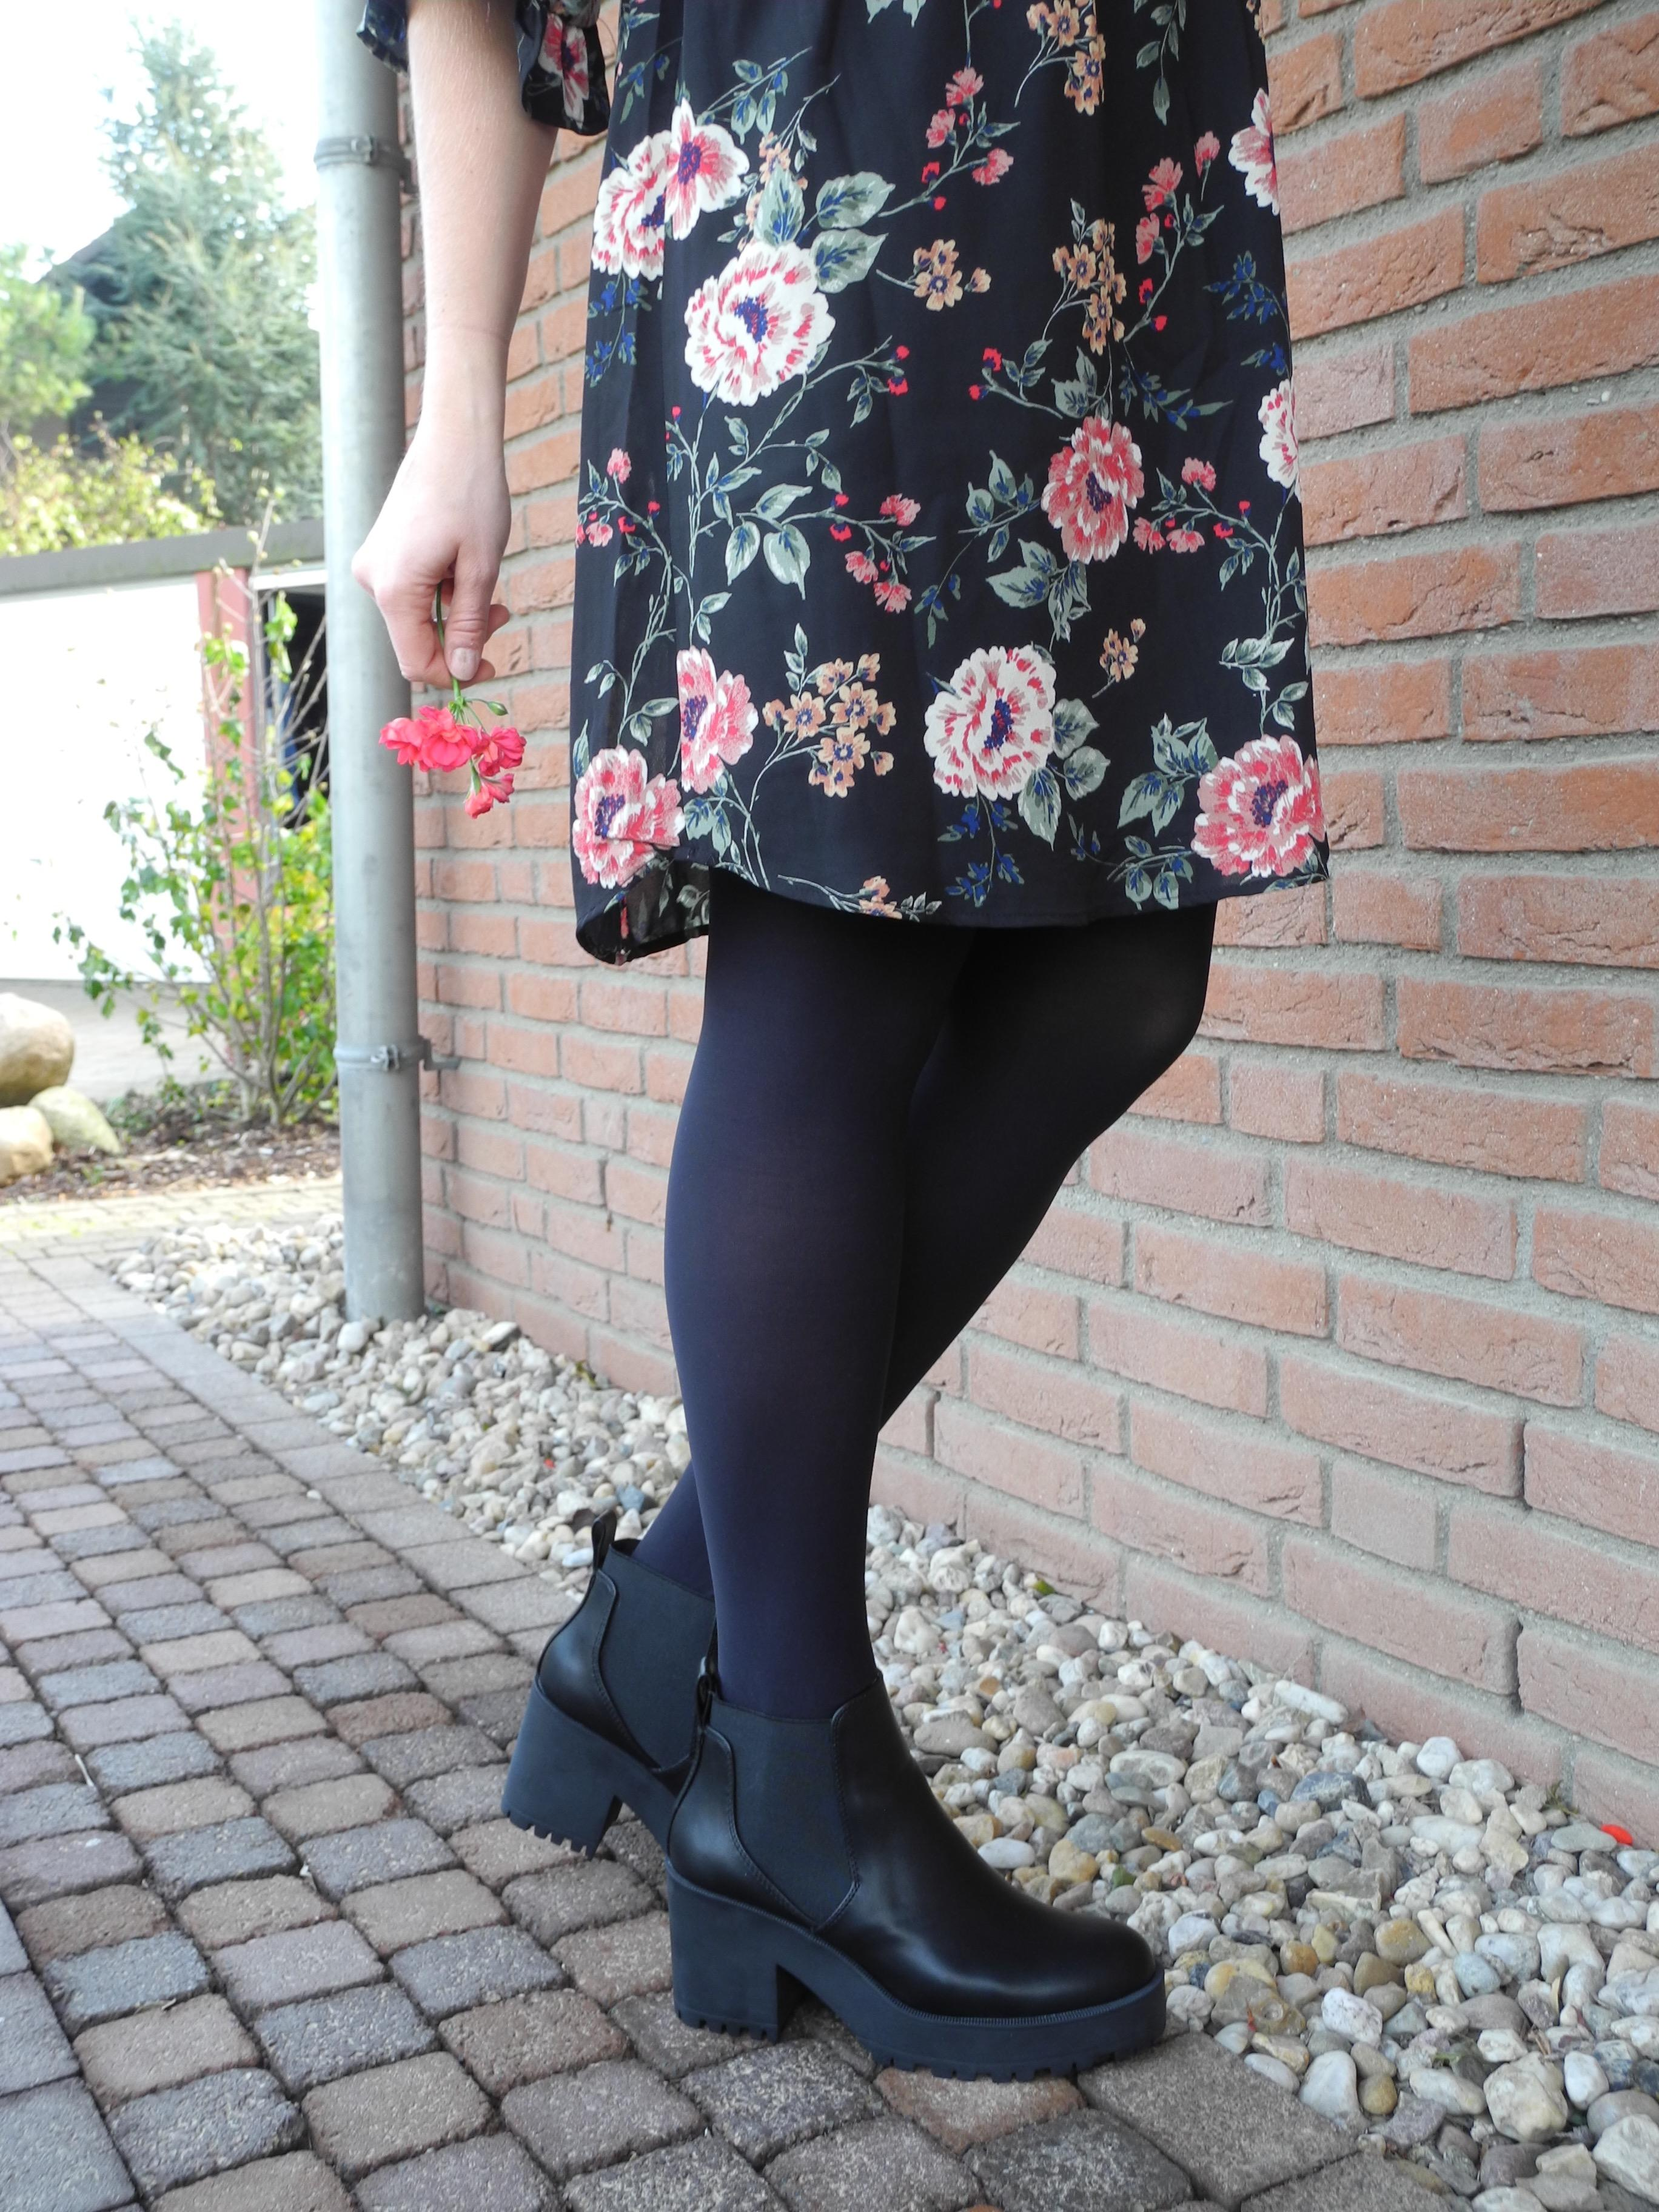 Flowers & Trackboots? Oh yes. #boots #ootd #outfit #style #fashion